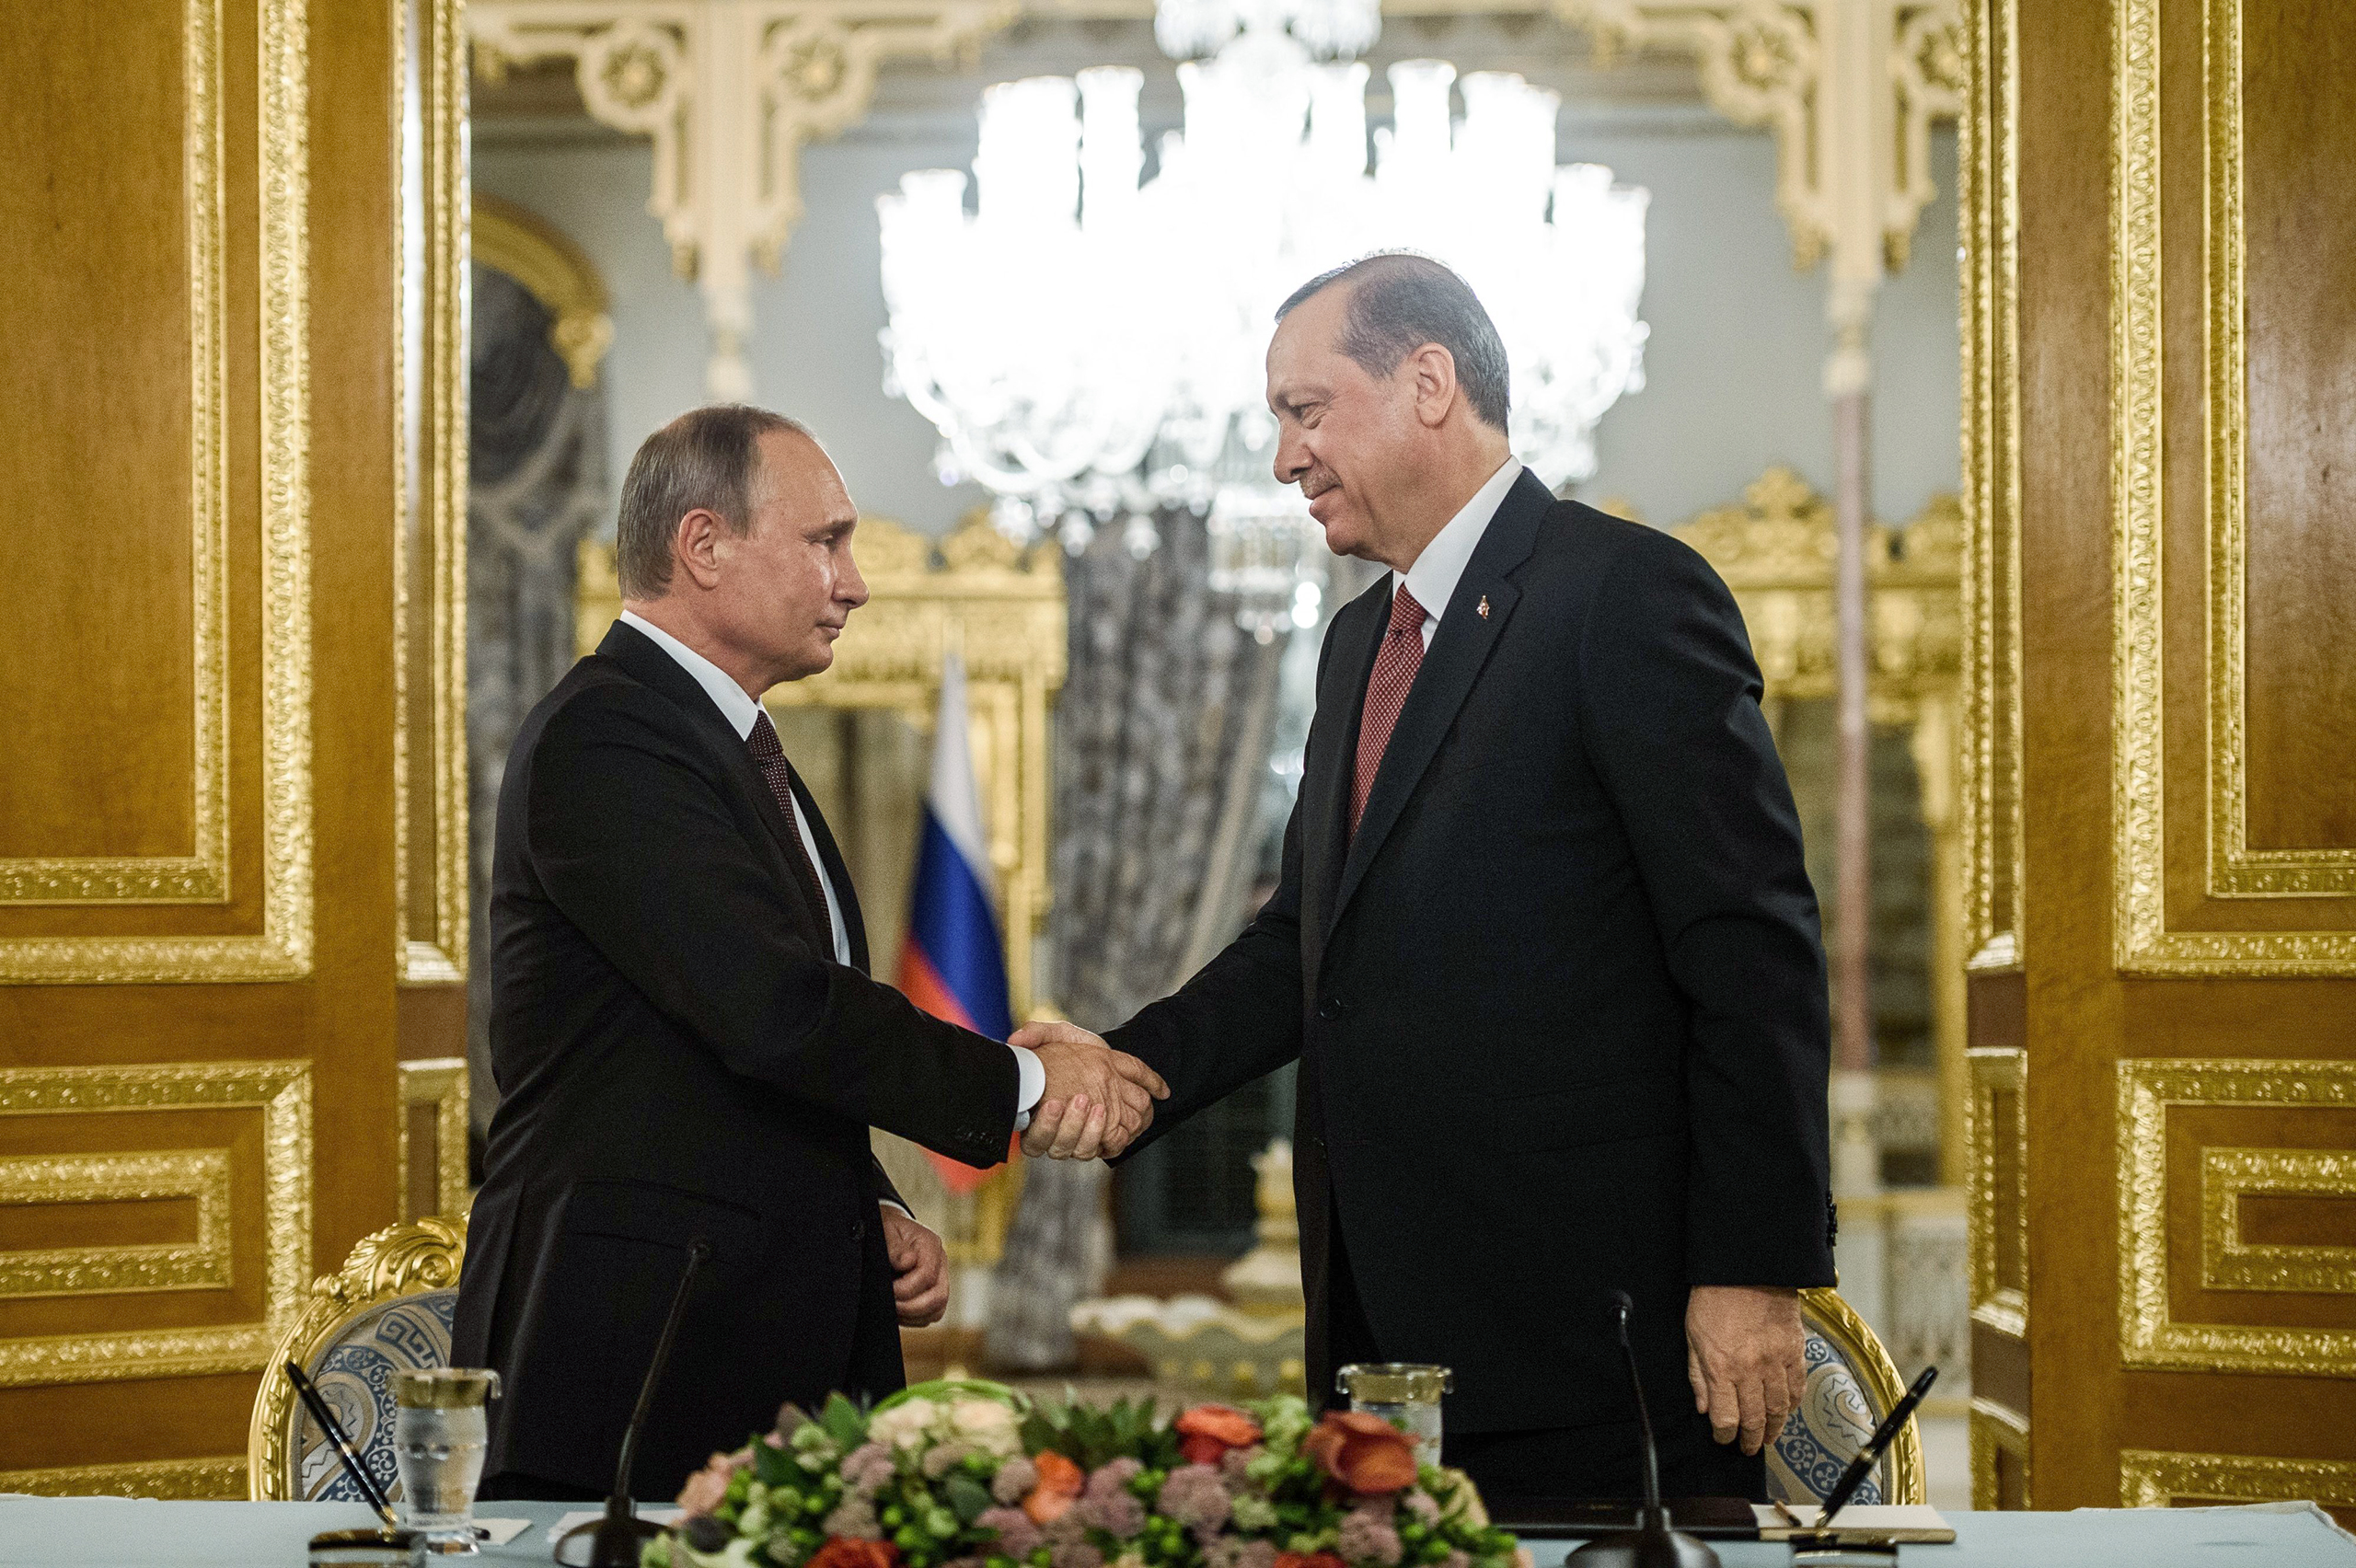 Ties between Putin and Erdogan are deepening, a remarkable turnaround after Russia and Turkey's fallout in November 2015